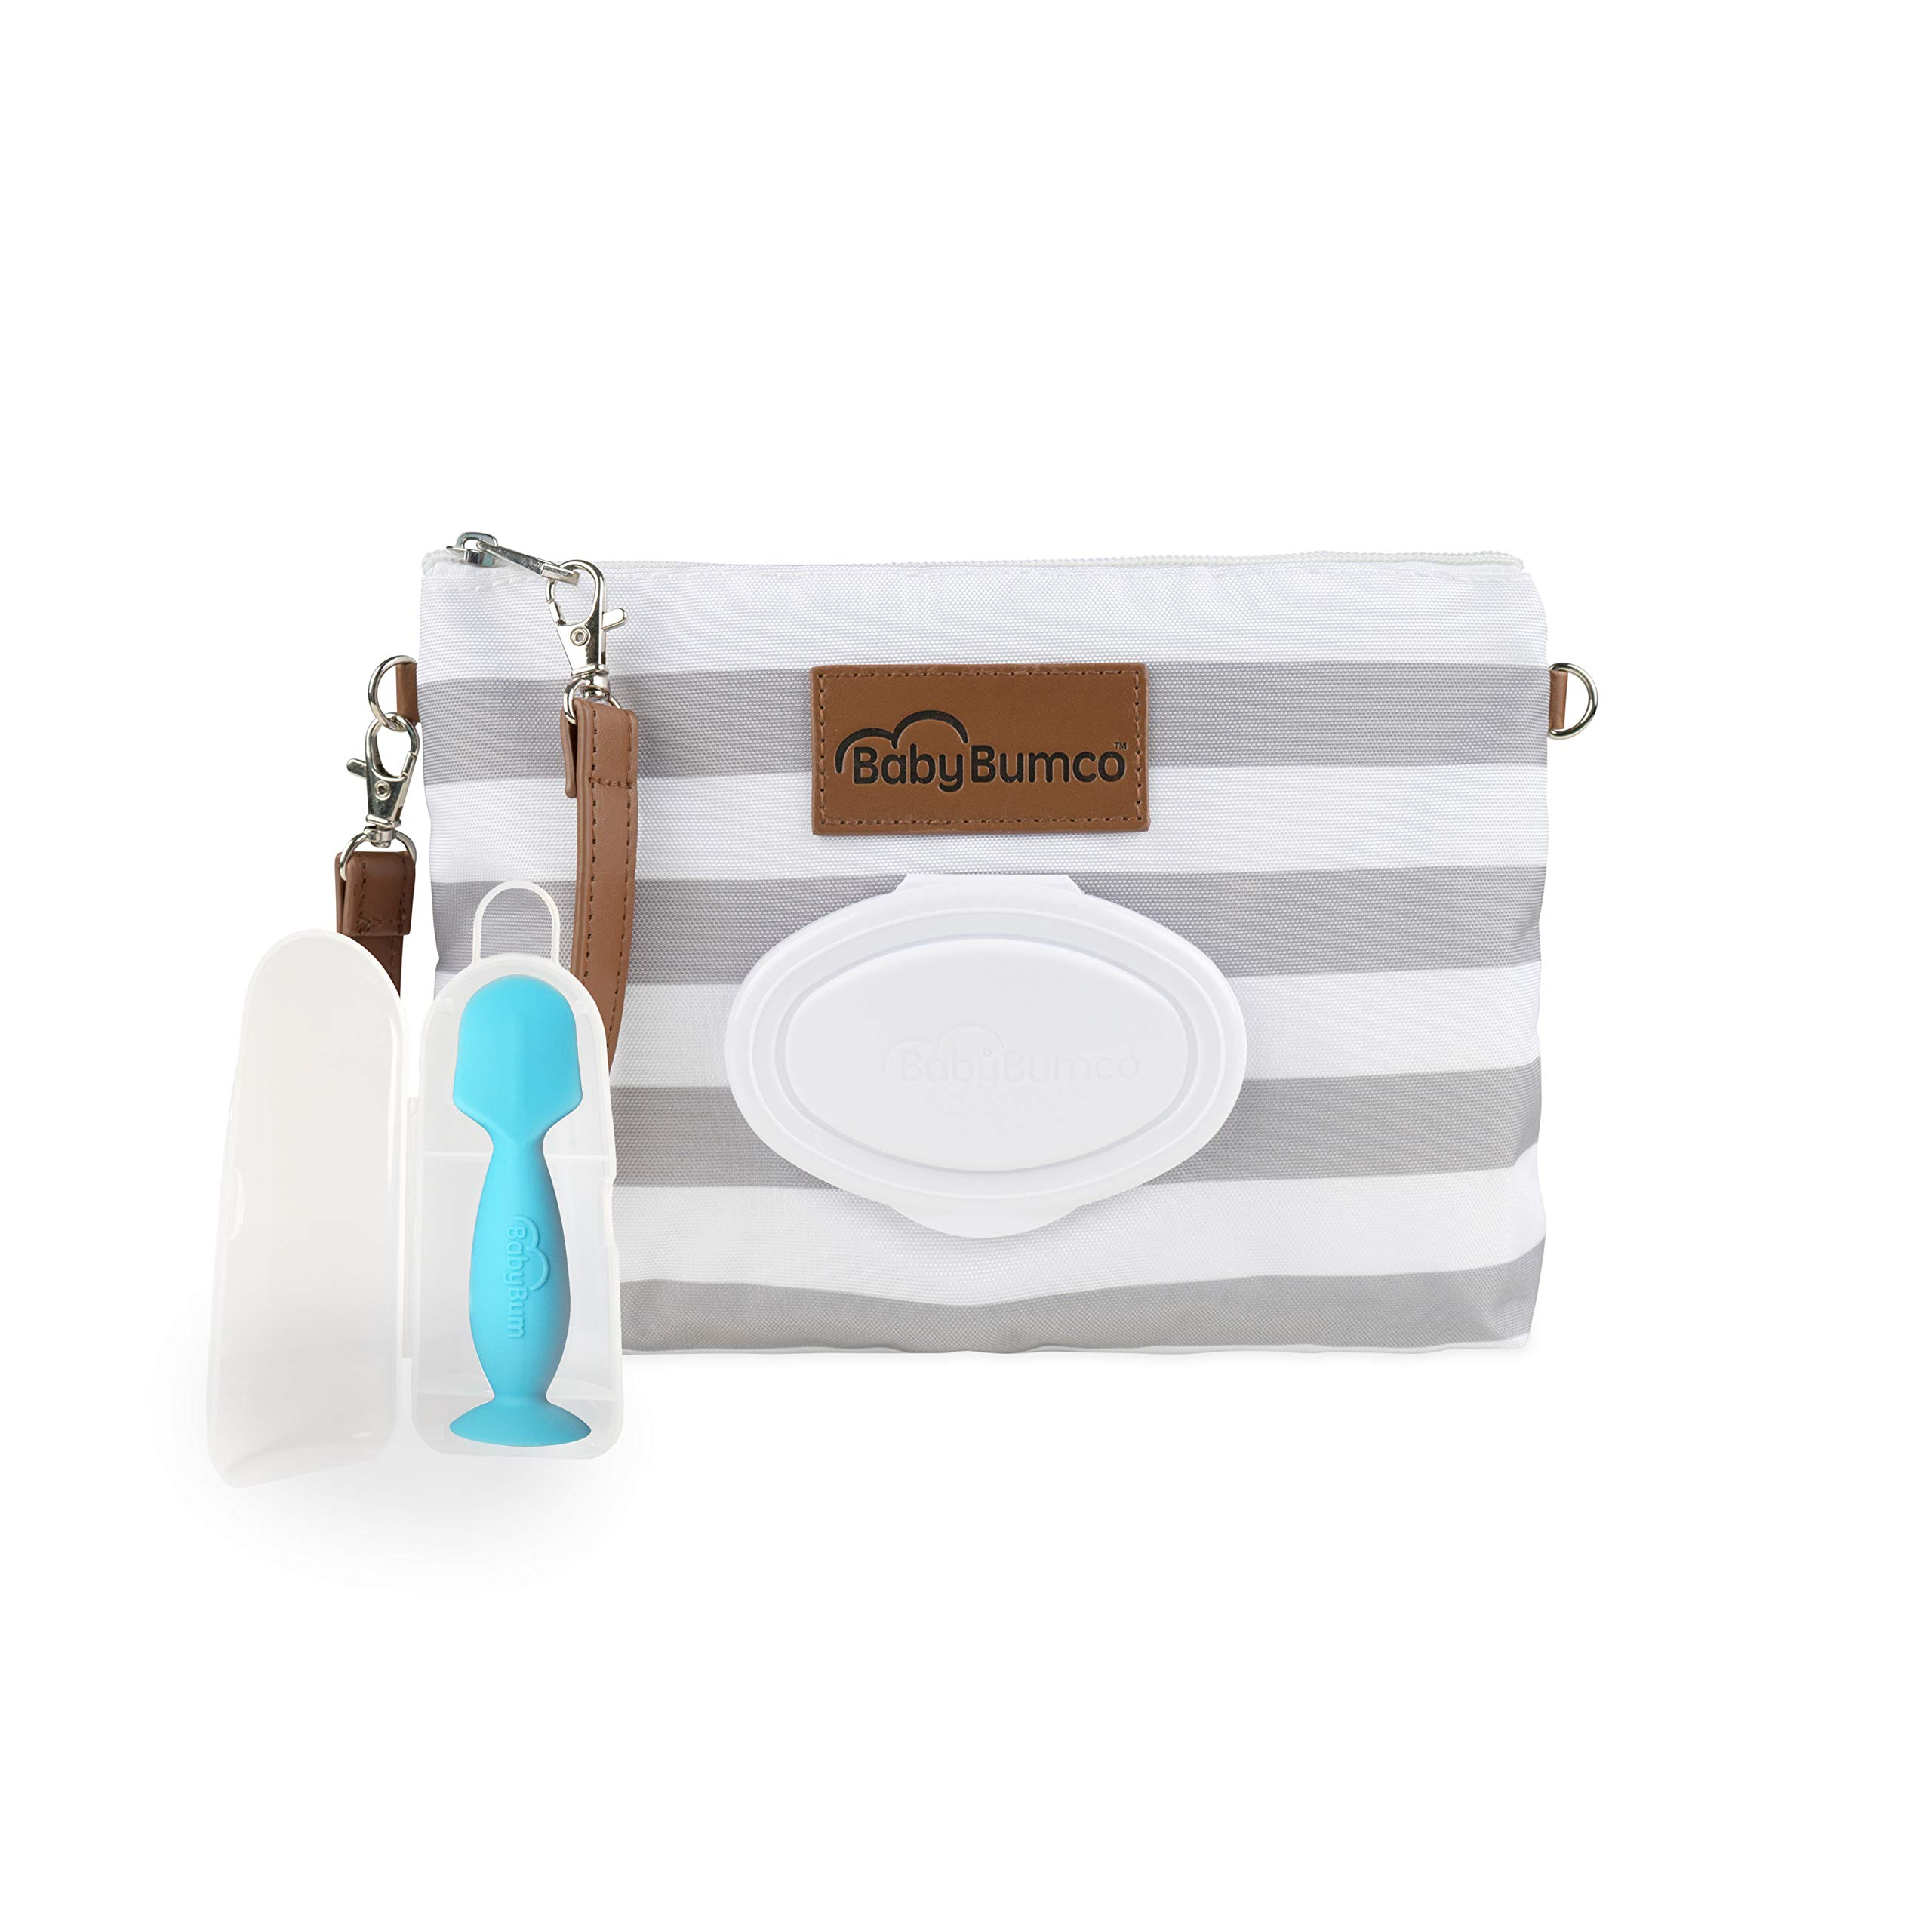 Diaper Clutch Bag and Mini Rash Cream Applicator with Travel Case, Soft Flexible Silicone - Water Resistant; Lightweight; Refillable Wipes Dispenser; Portable Changing Kit (Classic Gray + Blue)